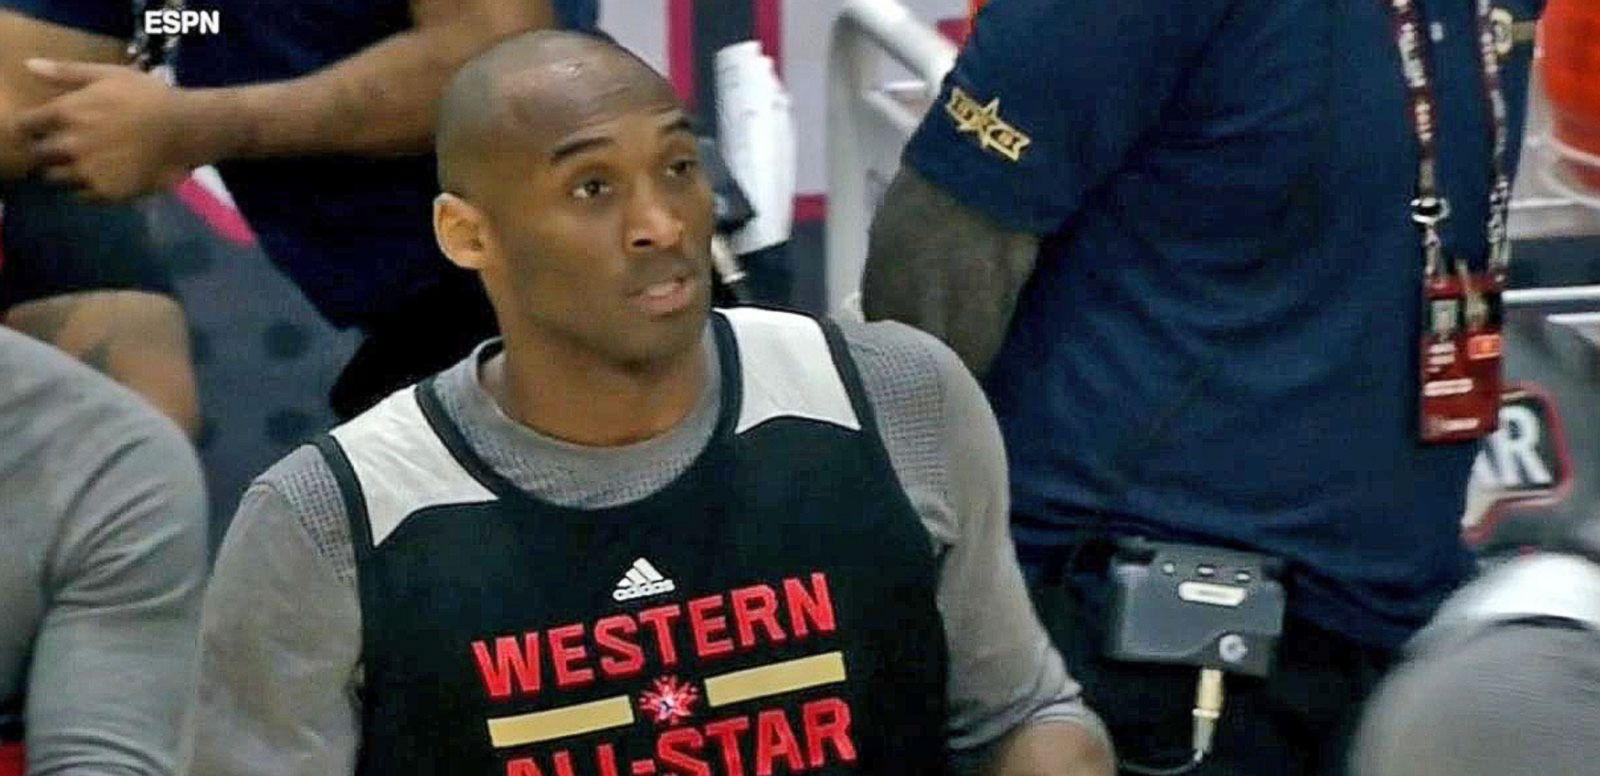 VIDEO: NBA All-Star Game Will Feature Retiring Kobe Bryant, Stephen Curry